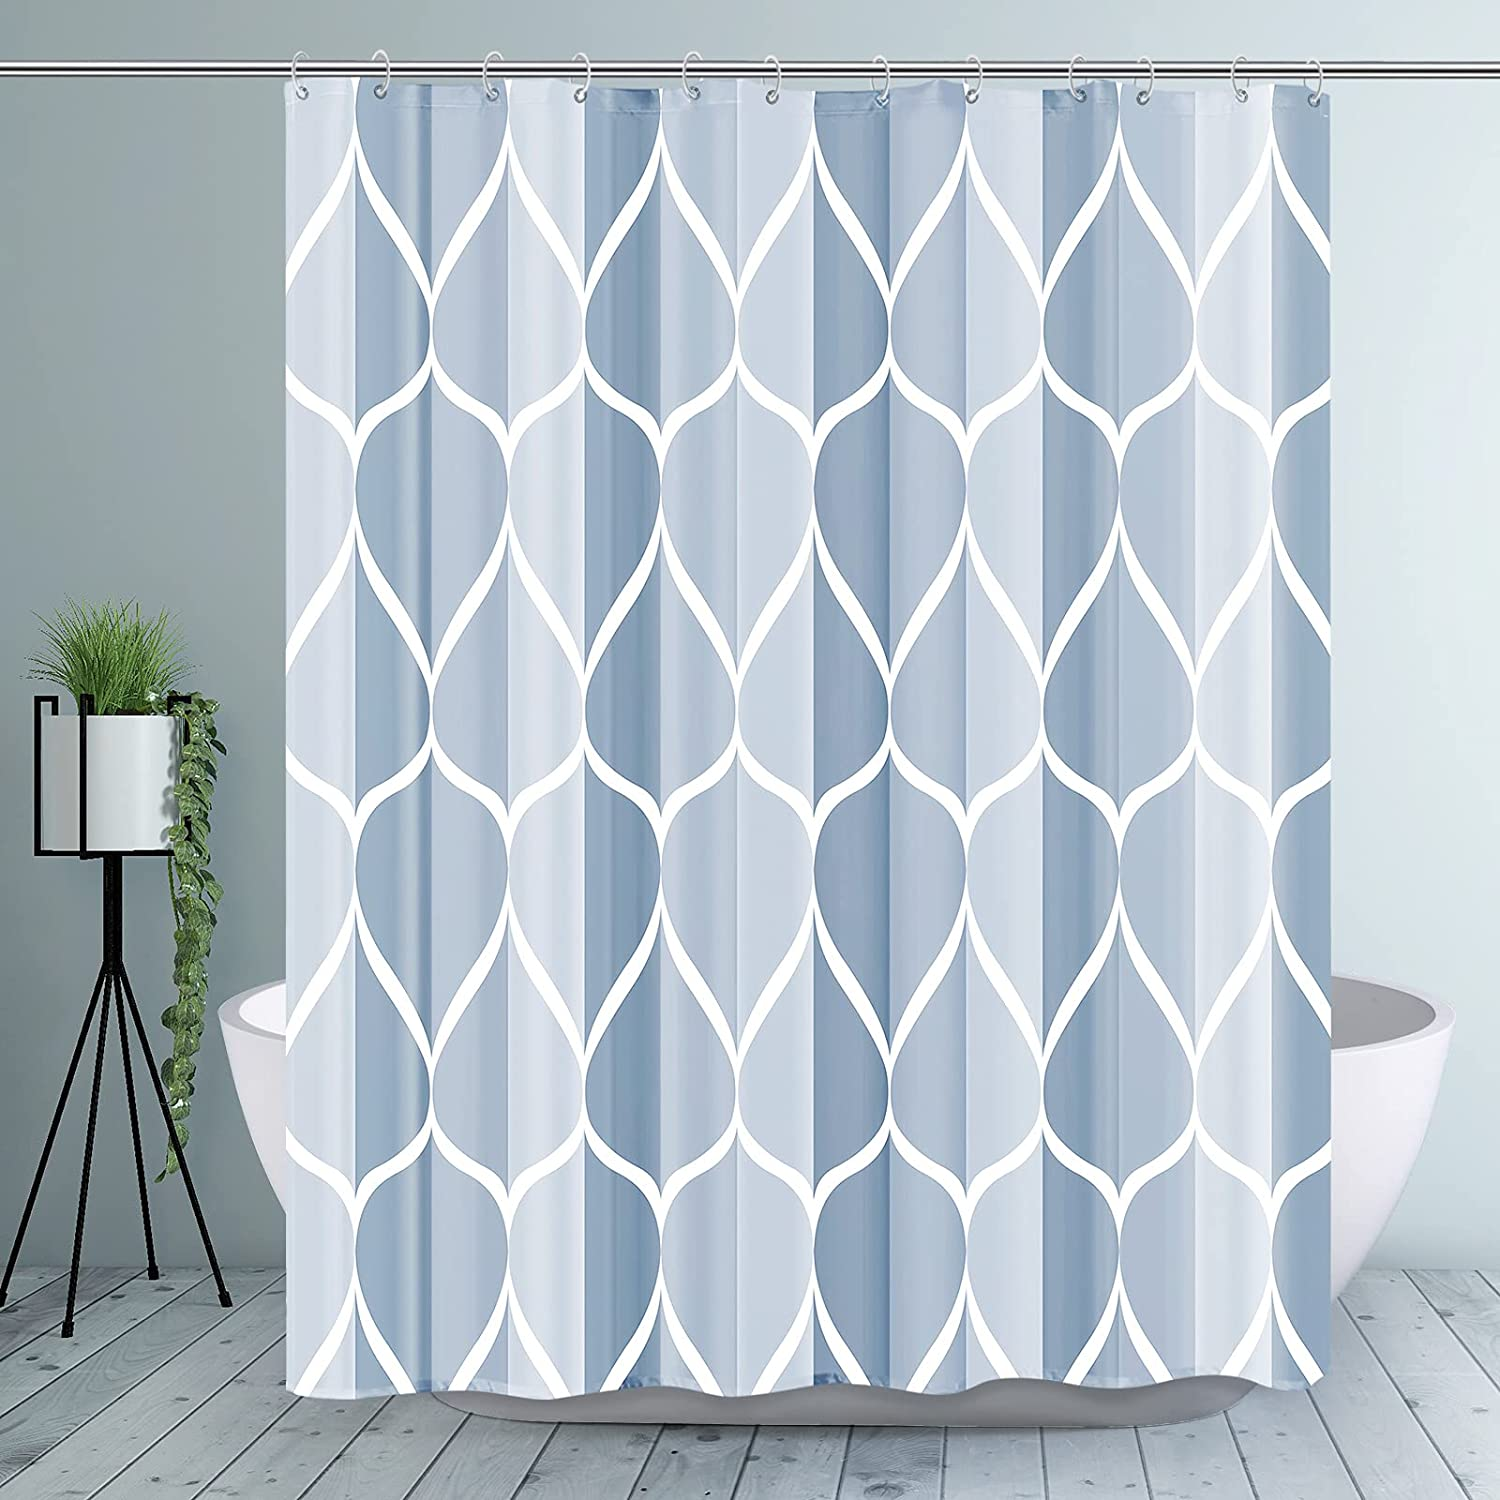 Gelbchu Dark Blue Geometric Shower Curtain, Waterproof Design and Polyester, Quick-Drying, Weighted Hem, Blue Fabric Shower Curtains Set for Bathroom W 72 x H 72, Durable and Washable with 12 Hooks